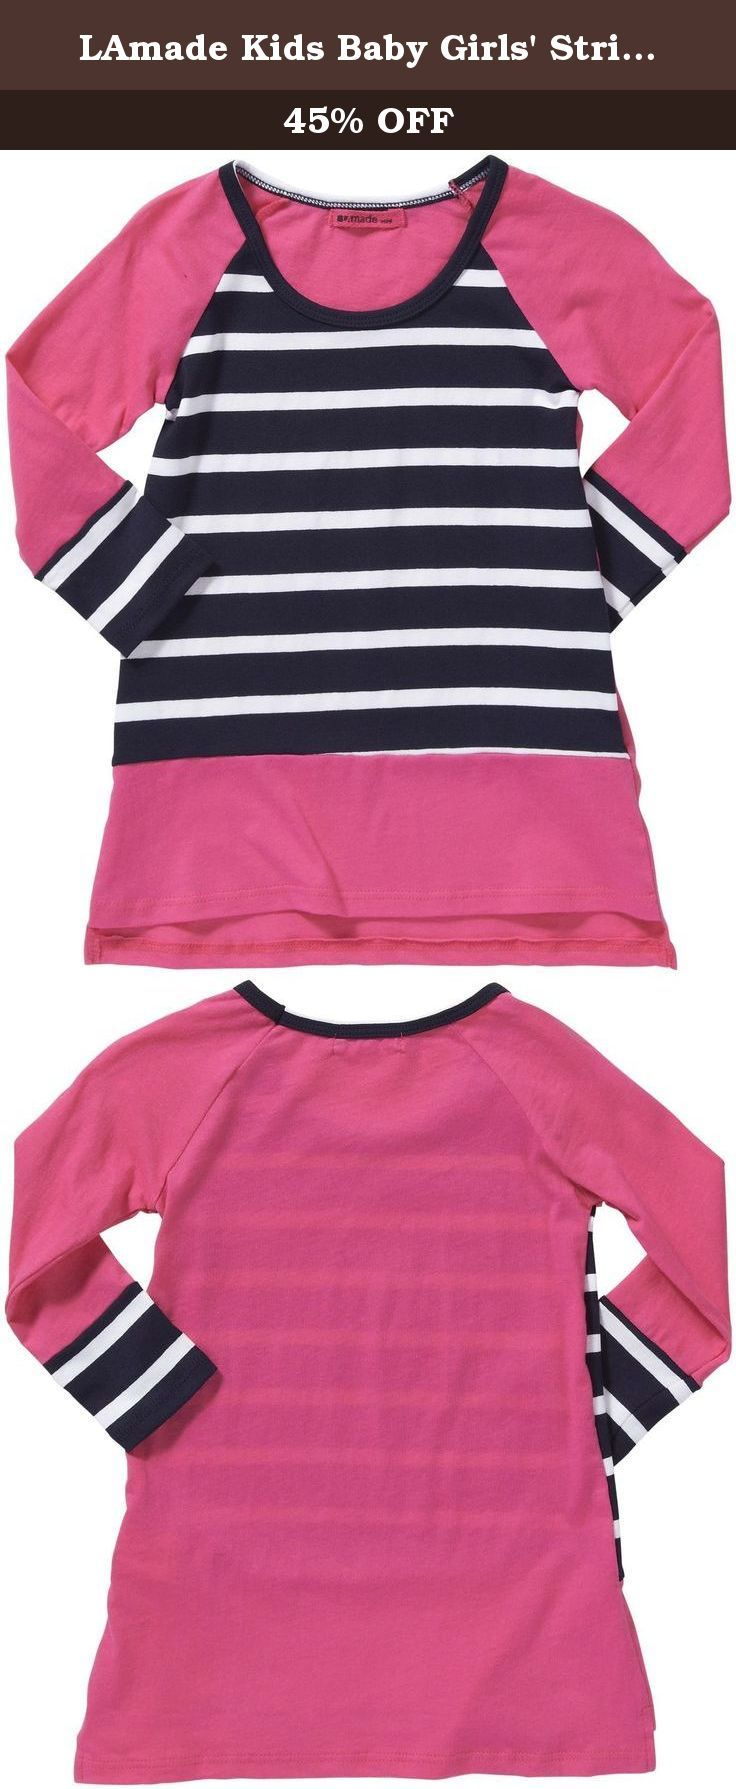 LAmade Kids Baby Girls' Striped Dress (Toddler/Kid) - Capri - 6-12 Months. LAmade Kids Striped Dress (Toddler/Kid) - Capri Fall in love with the LAmade Mini Crew Neck Pocket Dress. The comfortable fit and on-trend colorblock pattern makes the dress a great choice for everyday style! Features: Color blocked pockets.